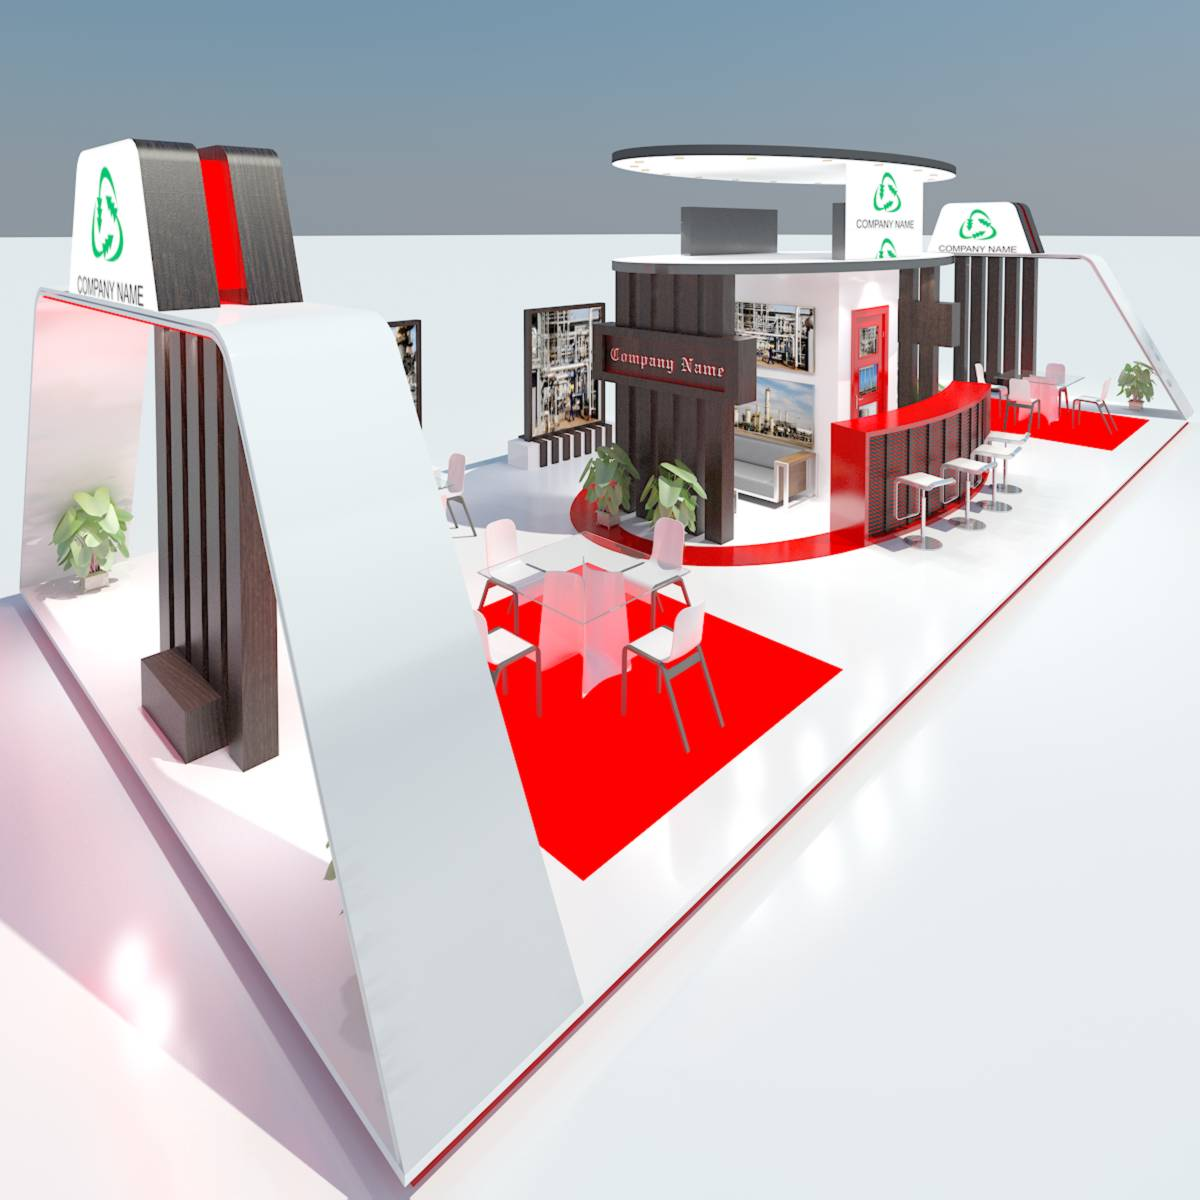 D Model Of Exhibition : Exhibition stand d model buy